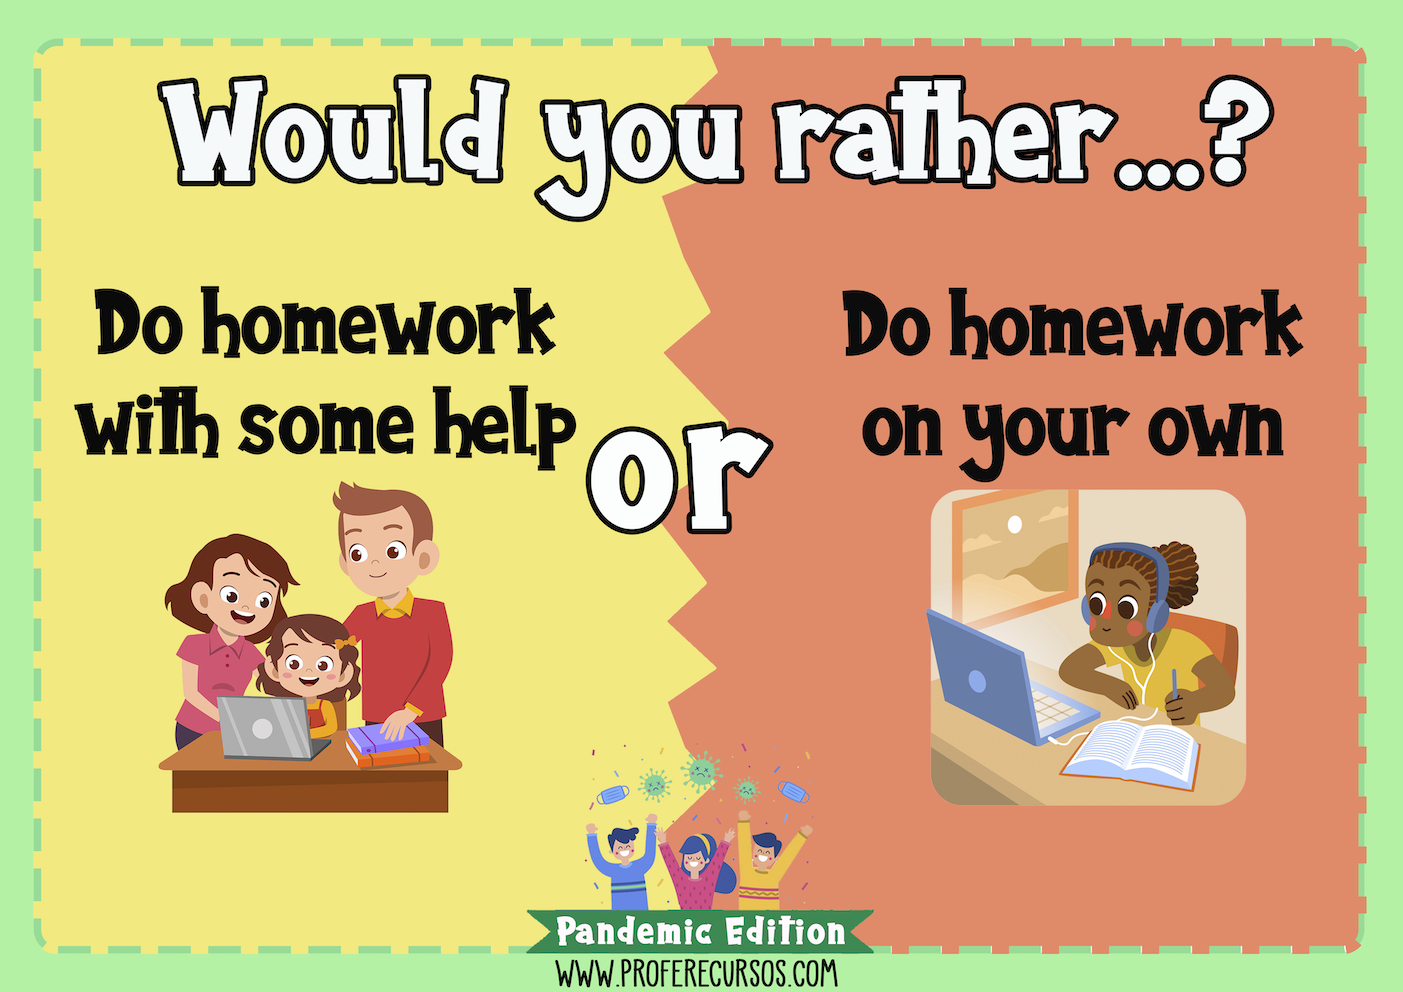 Would you rather speaking game for kids